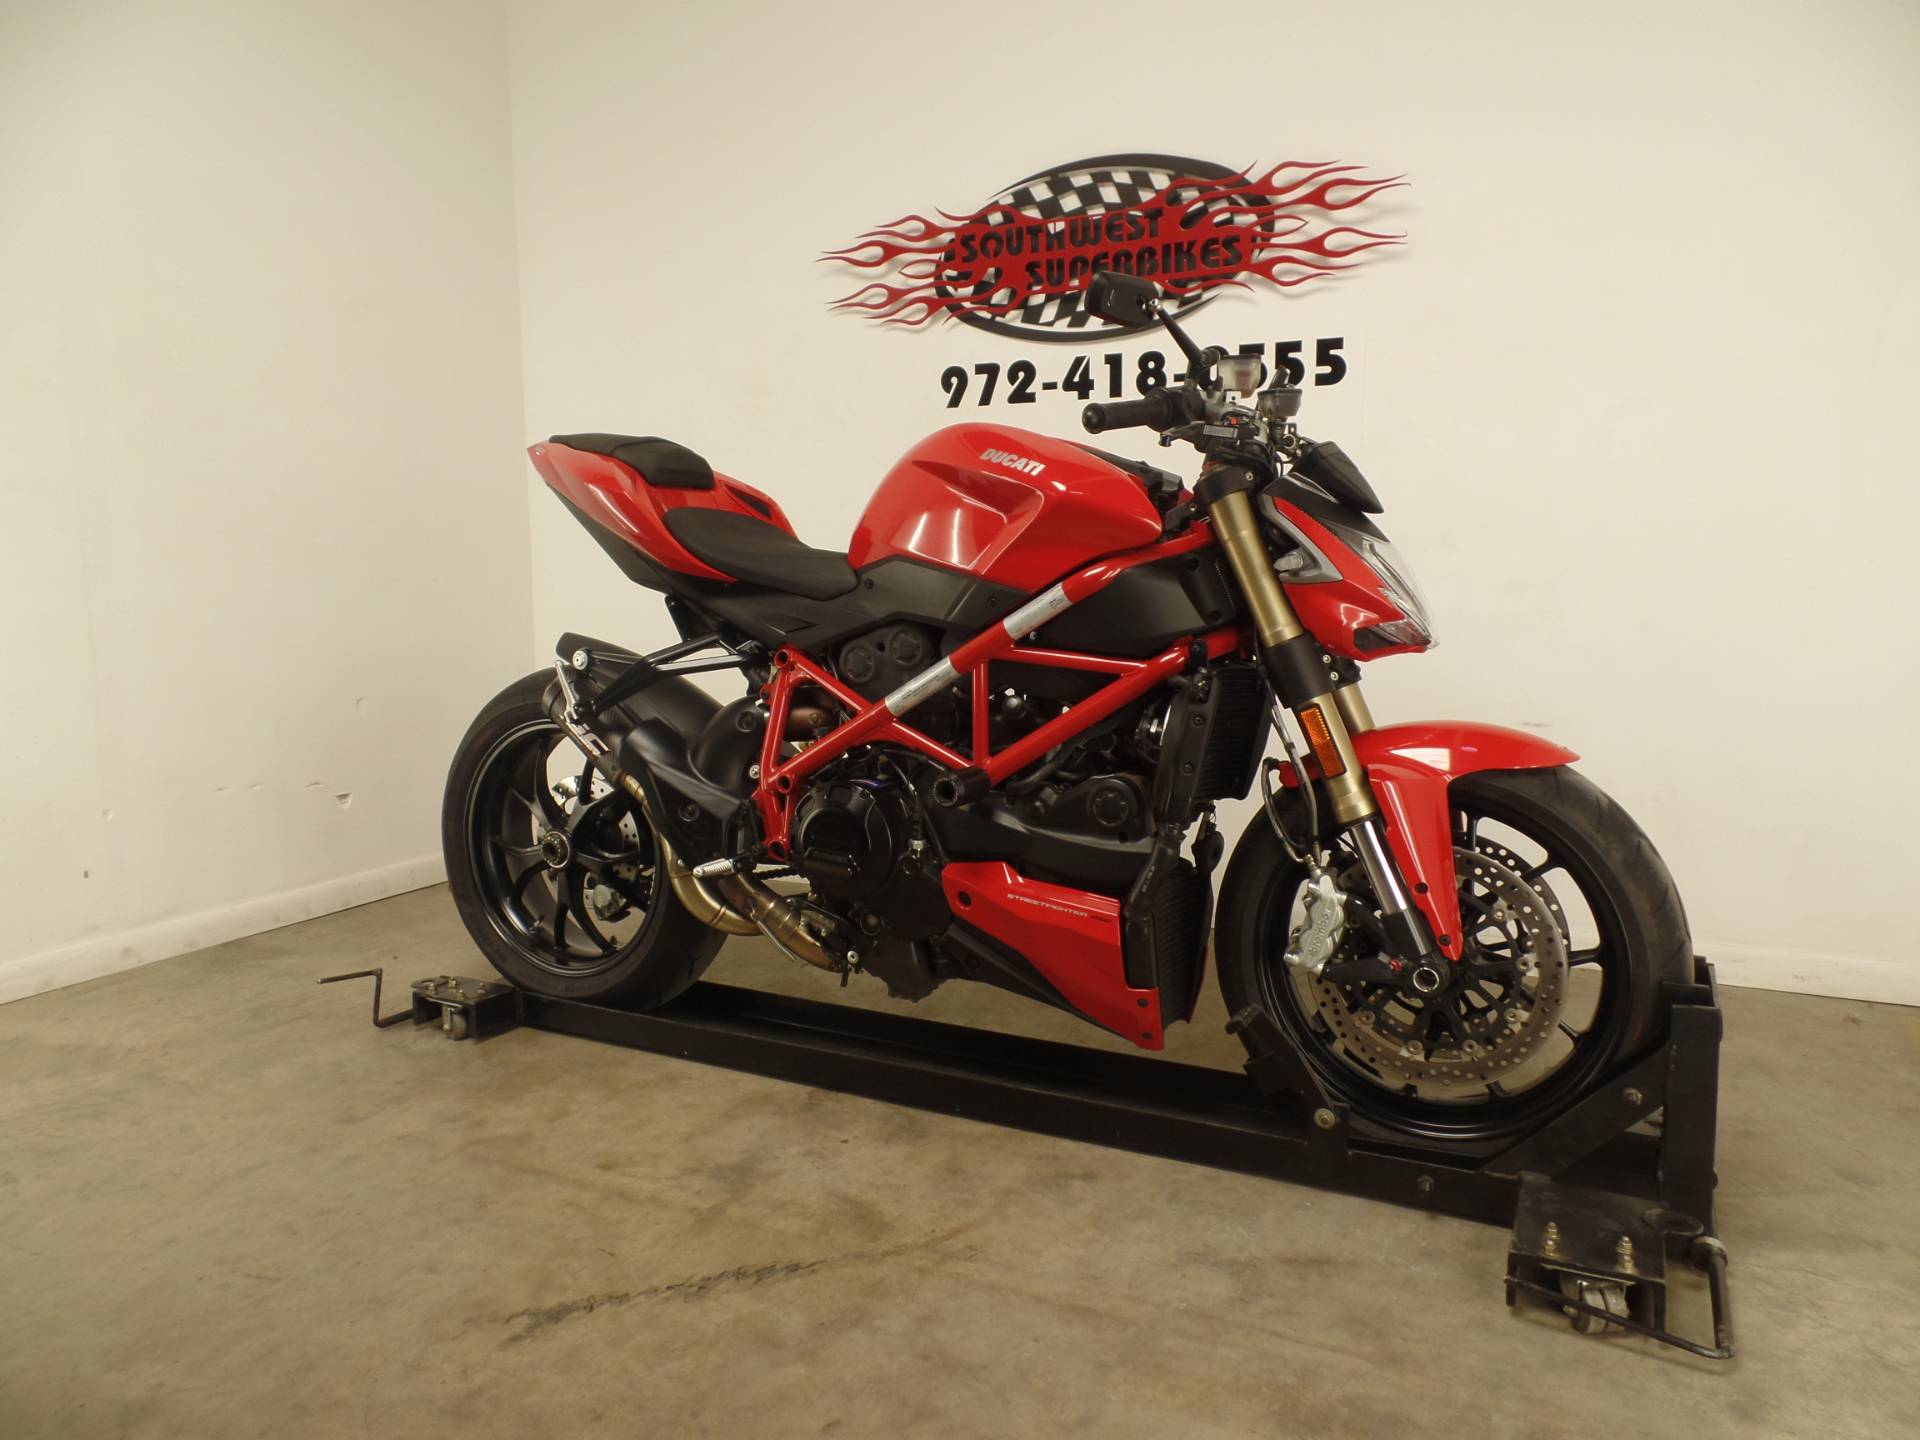 2015 Ducati Streetfighter 848 in Dallas, Texas